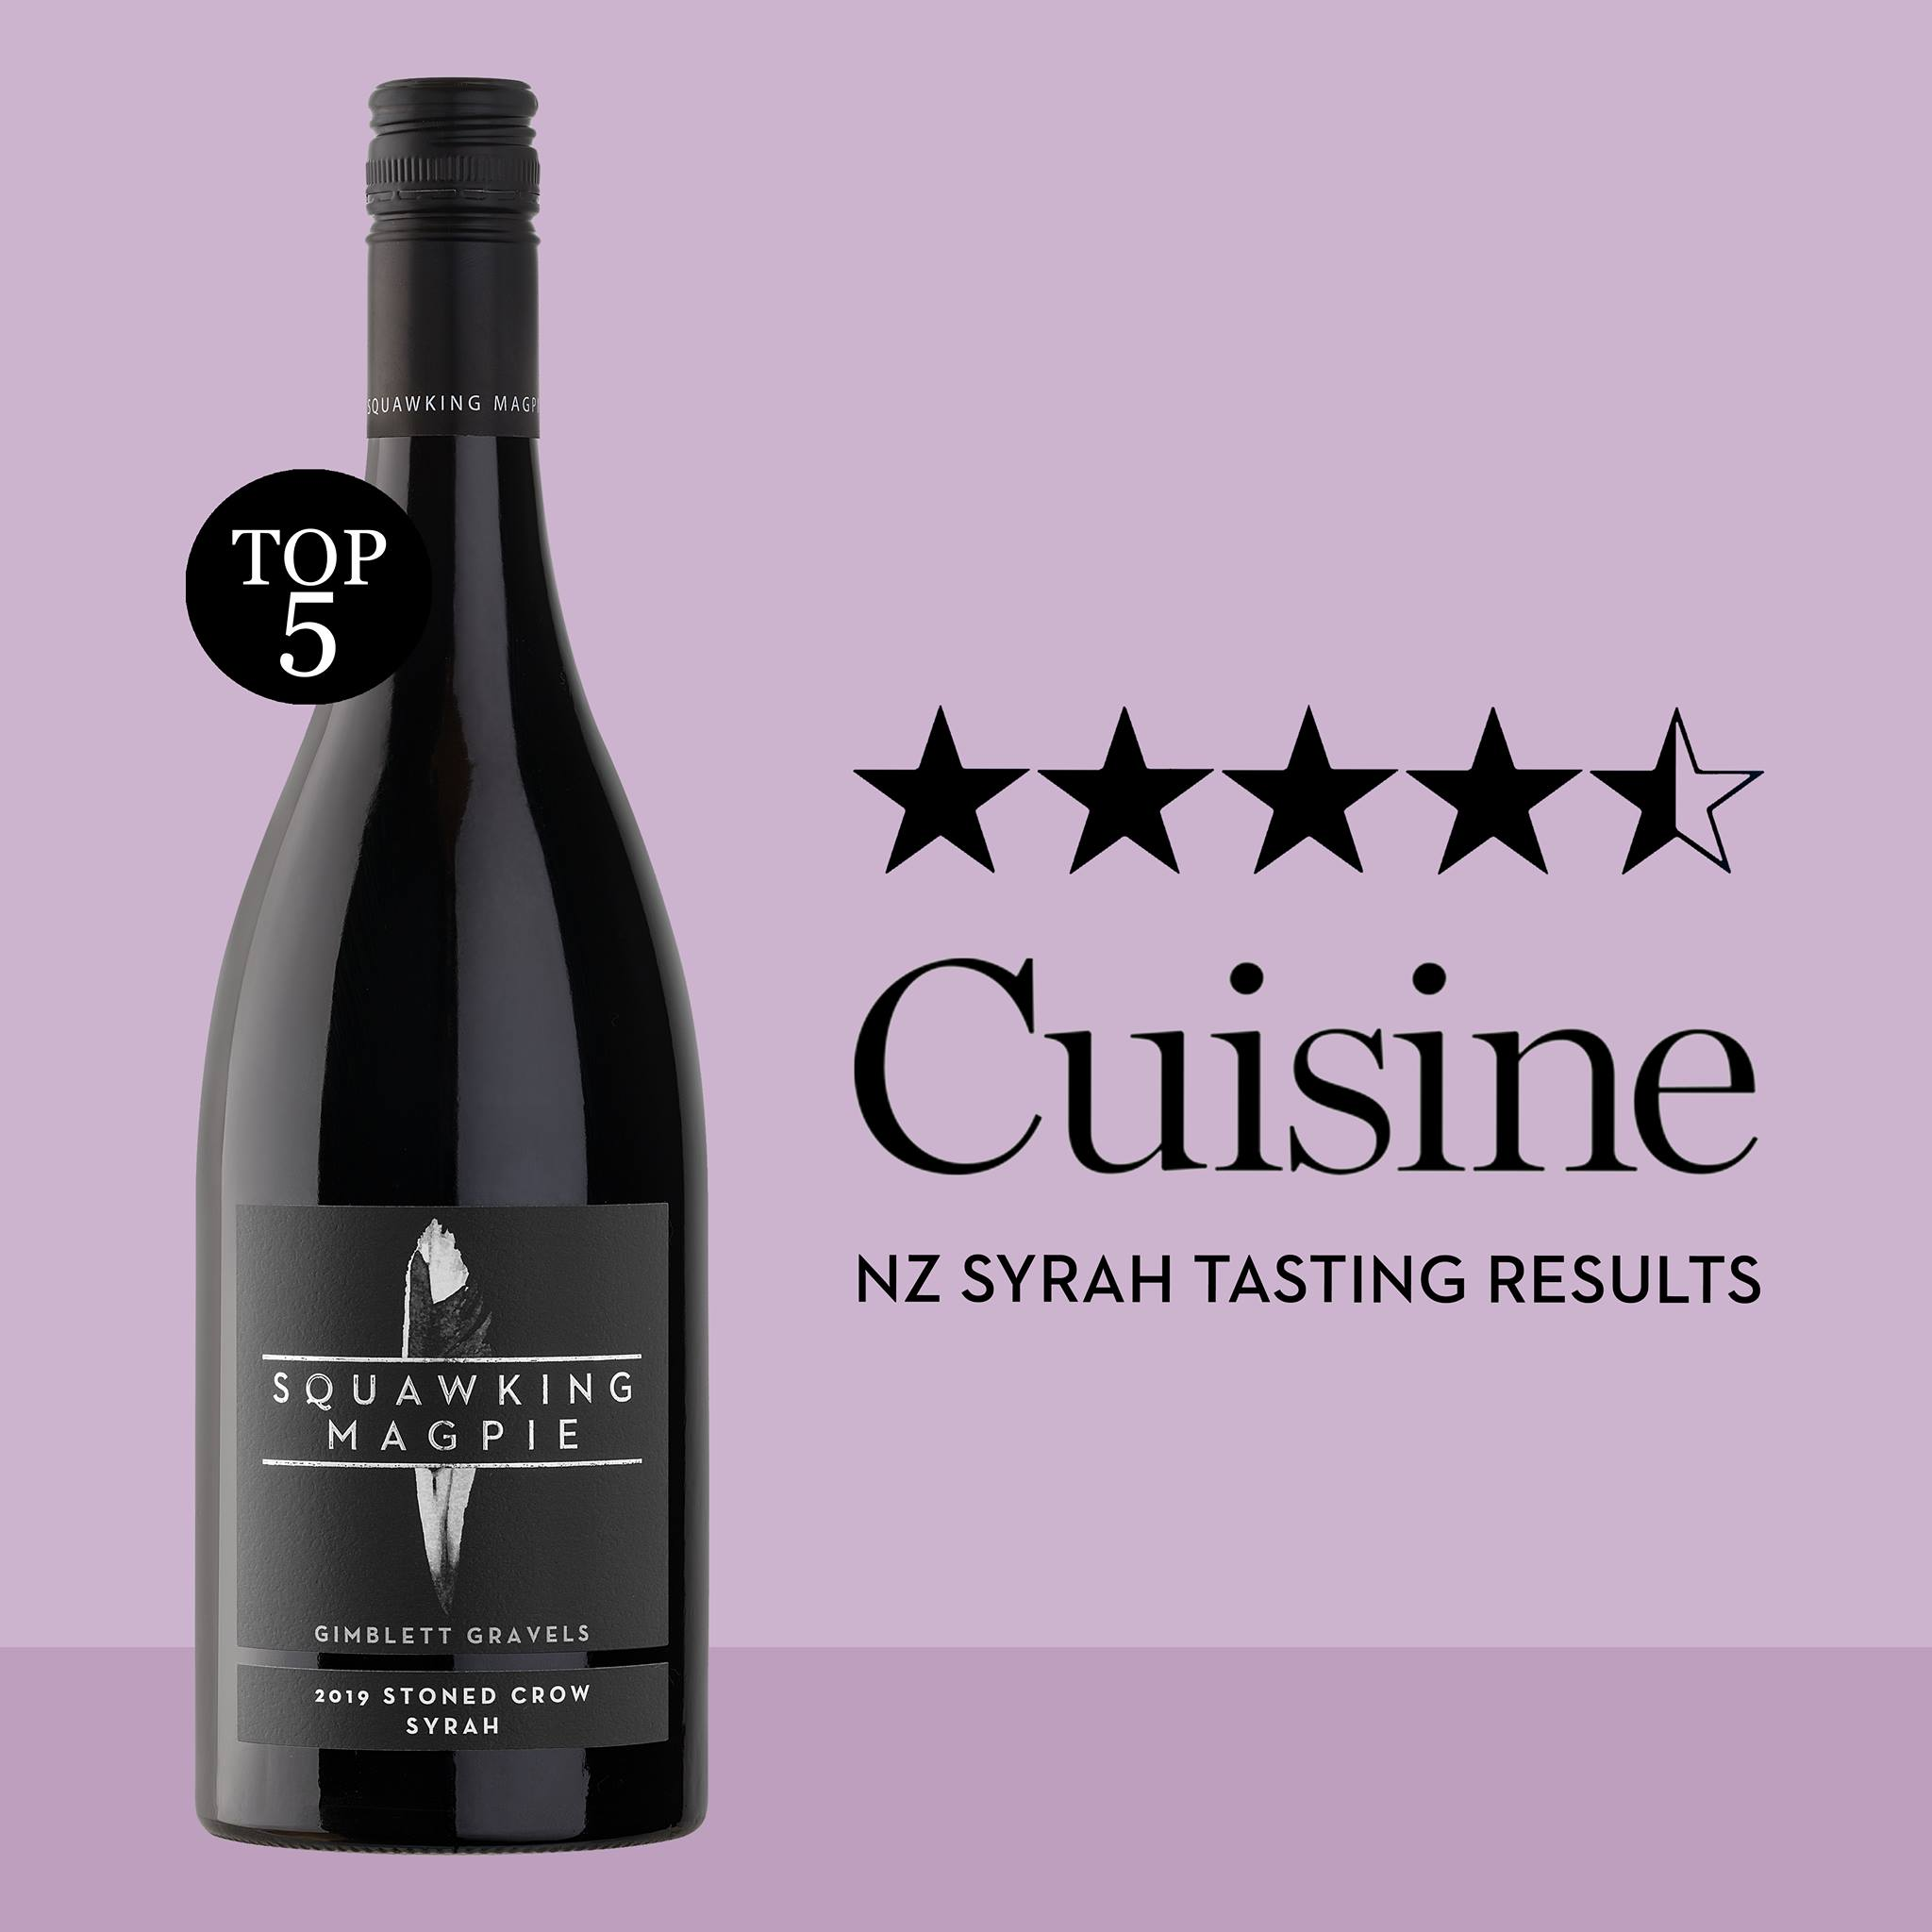 Gimblett Gravels Hawke's Bay Stoned Crow Syrah 2019 placed at #3 in the 2021 Cuisine Magazine NZ Syrah Tasting Results.